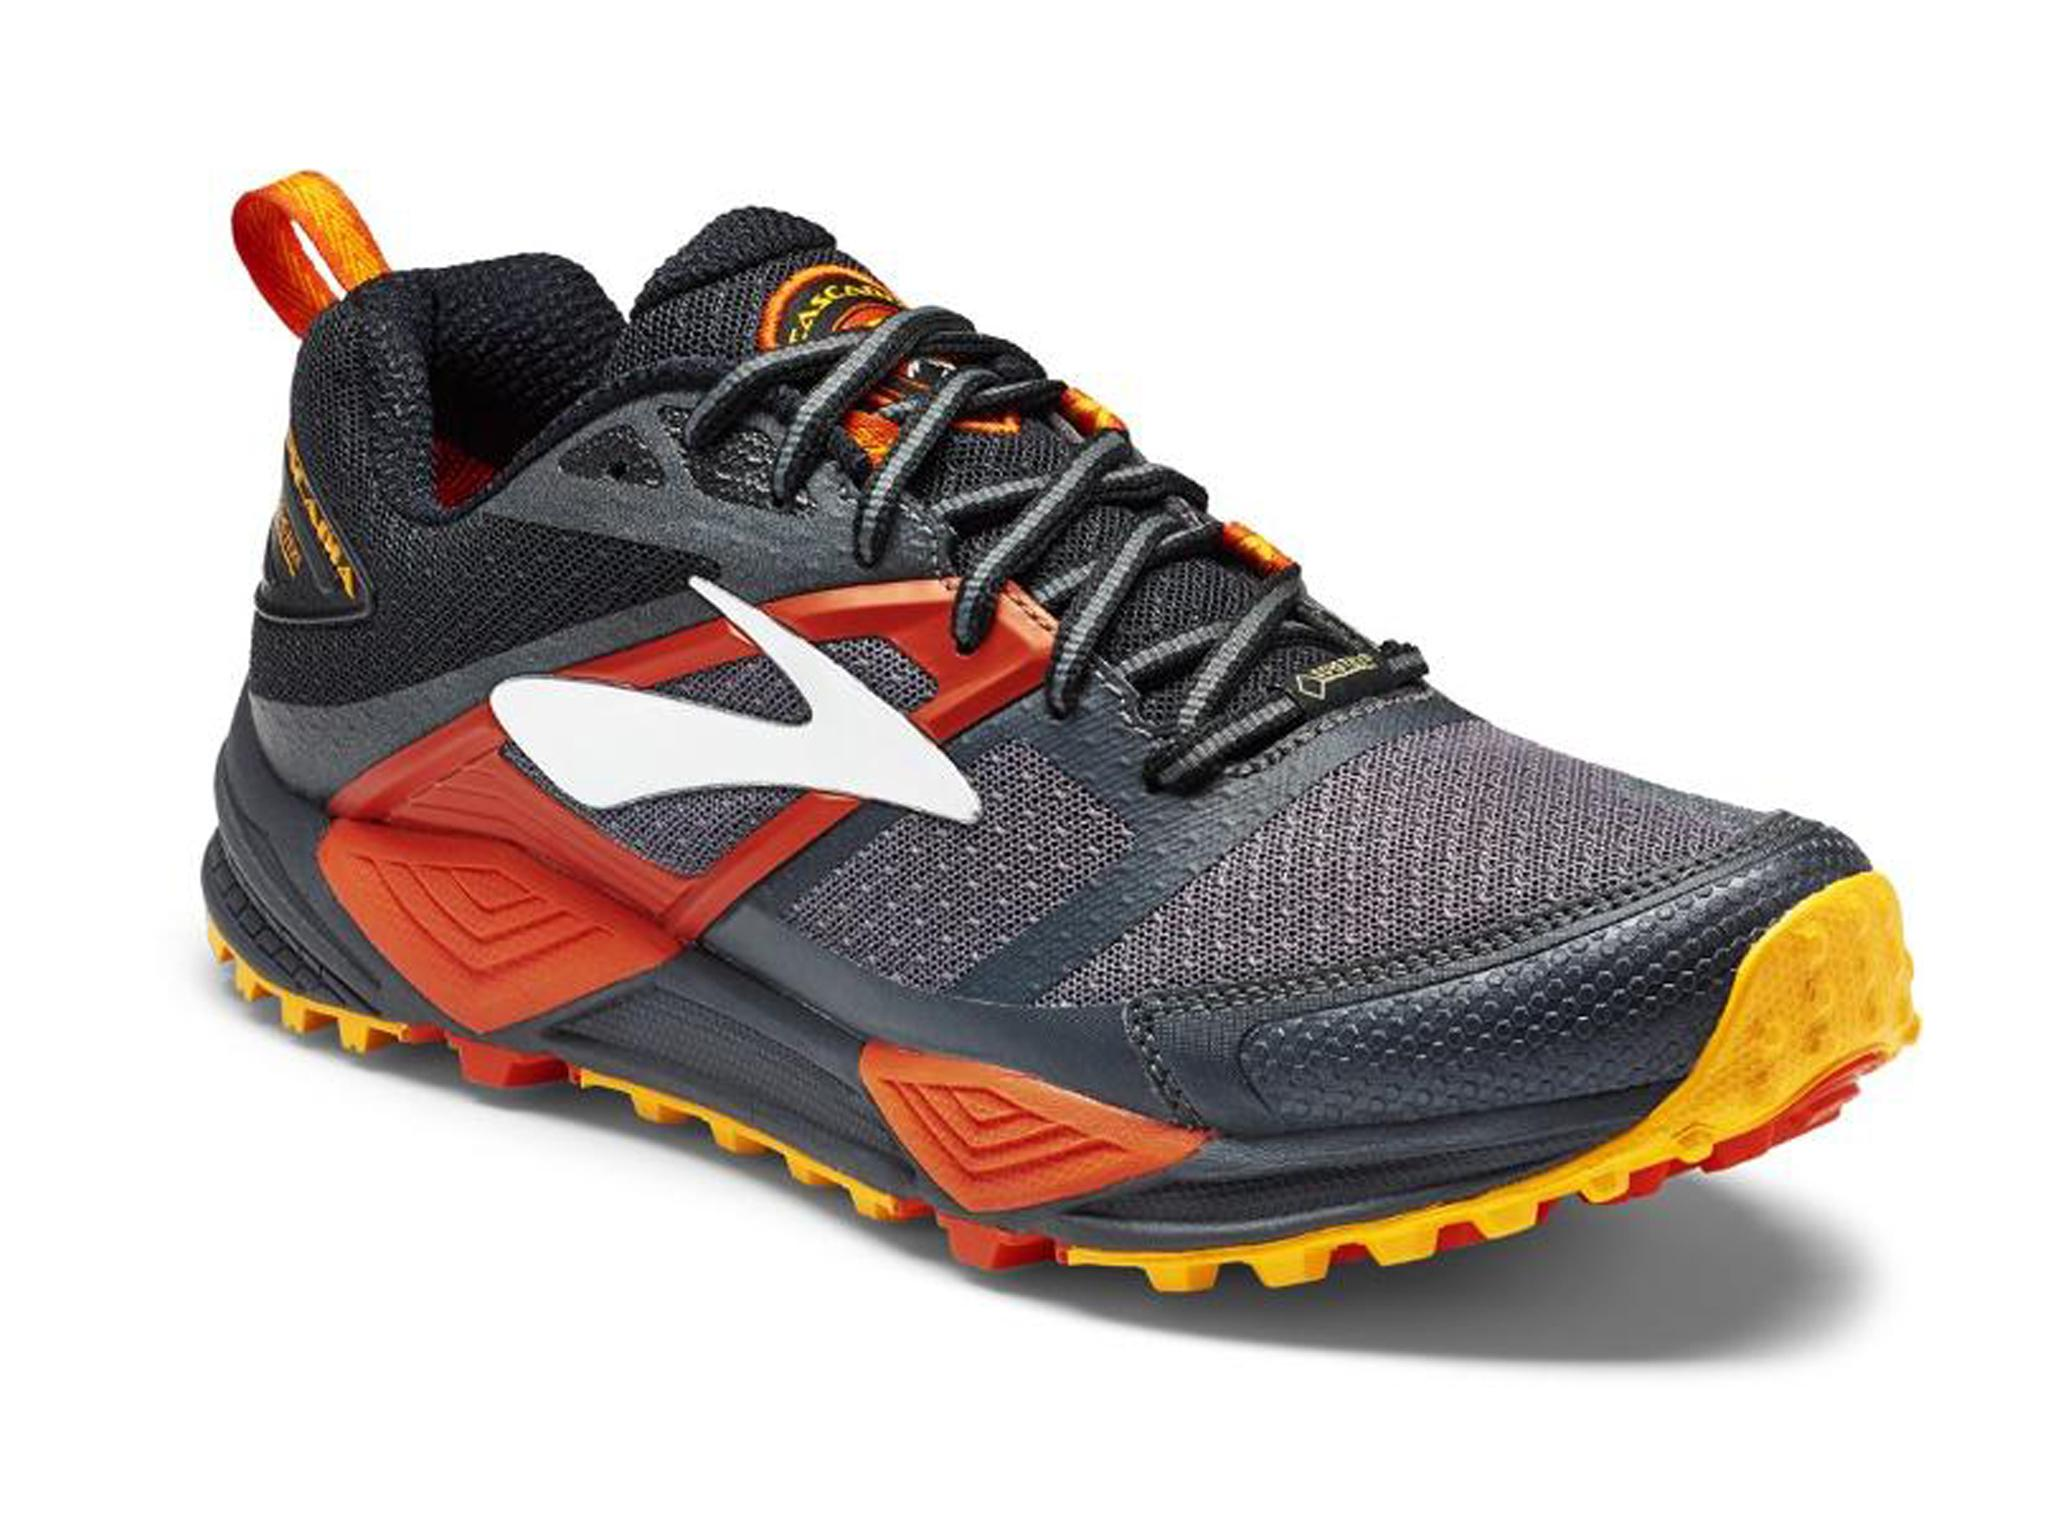 9 best running shoes for ultramarathons | The Independent